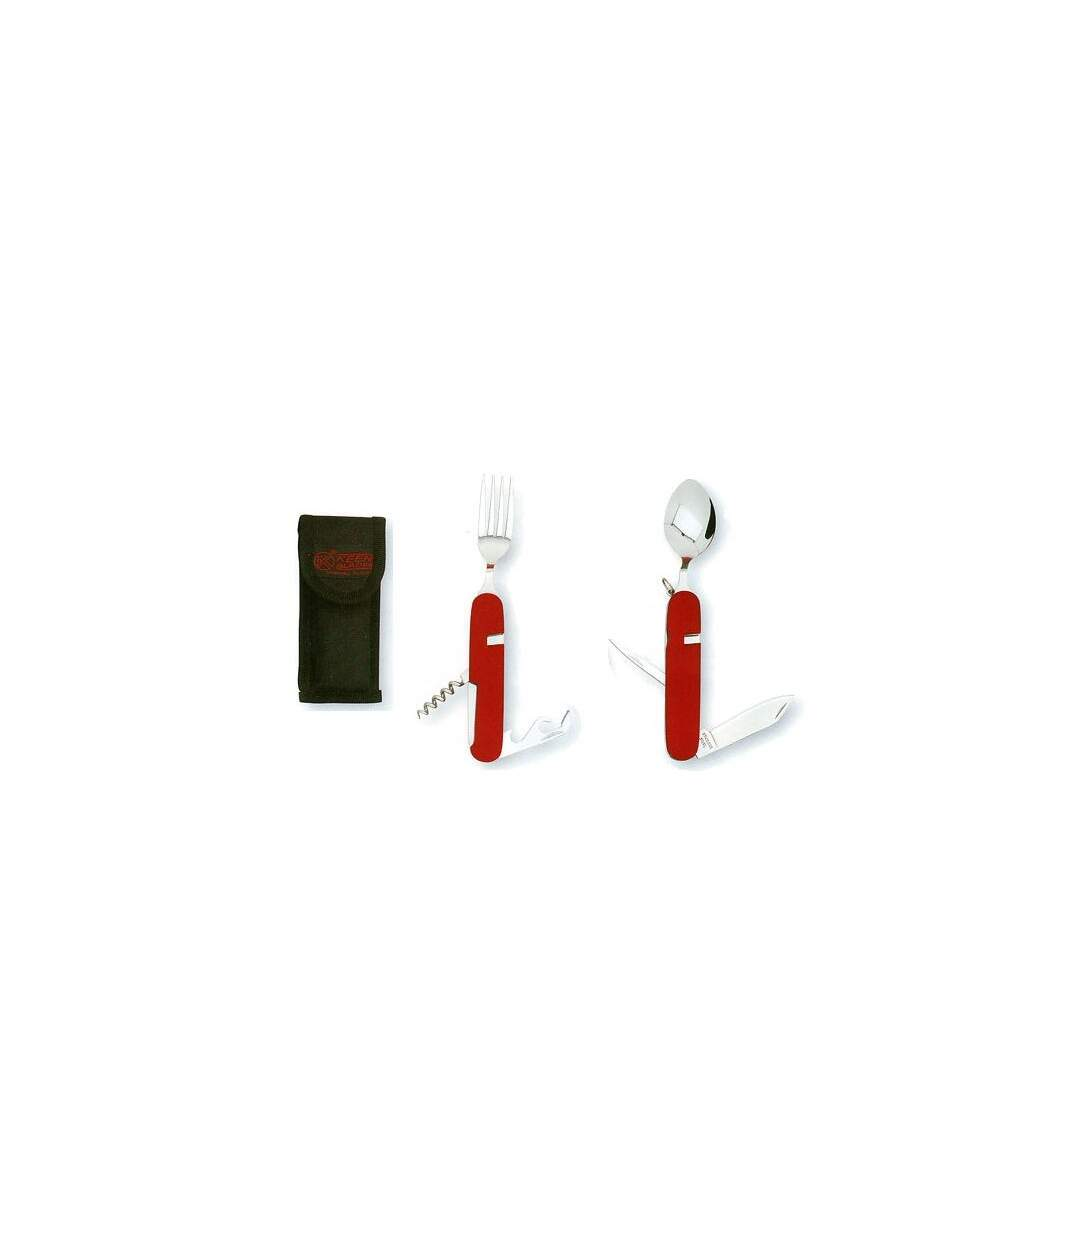 Couvert camping Keen Blades rouge